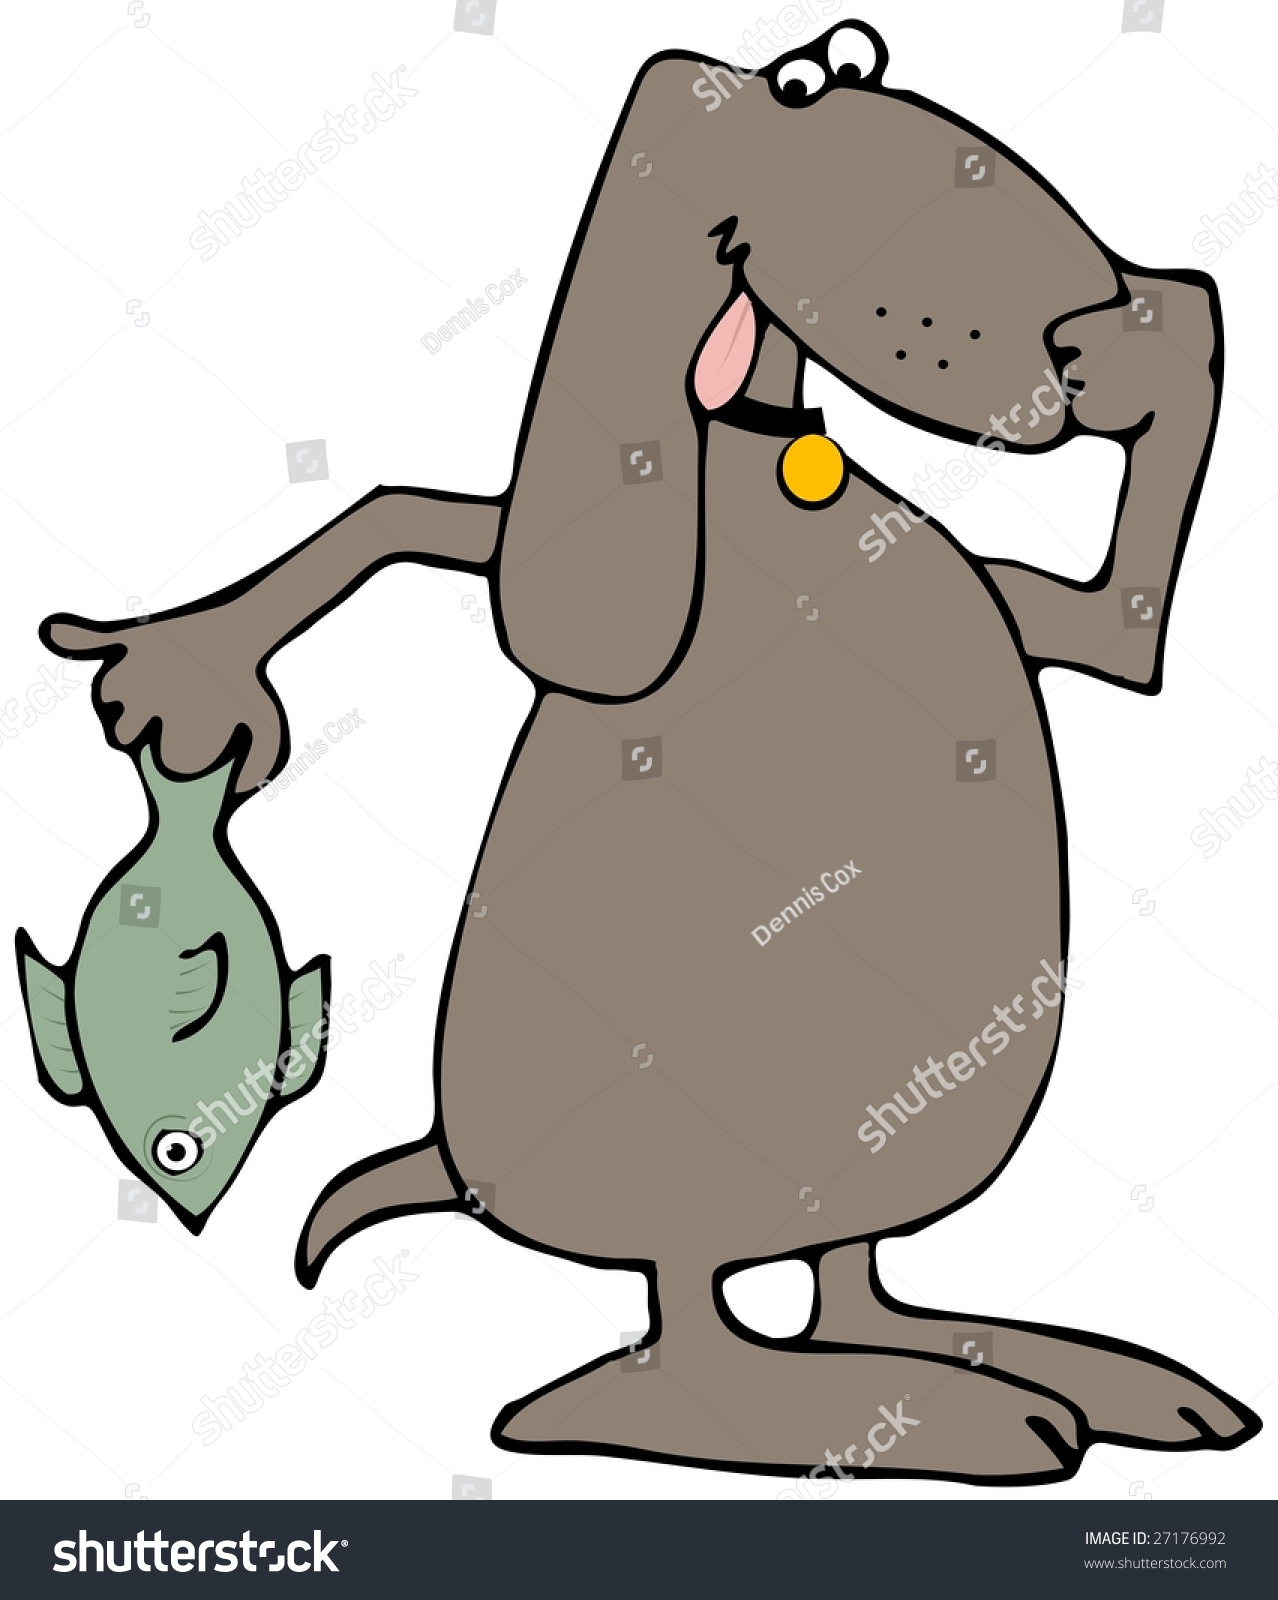 Stinky fish stock illustration 27176992 shutterstock for Stinky fish in a can